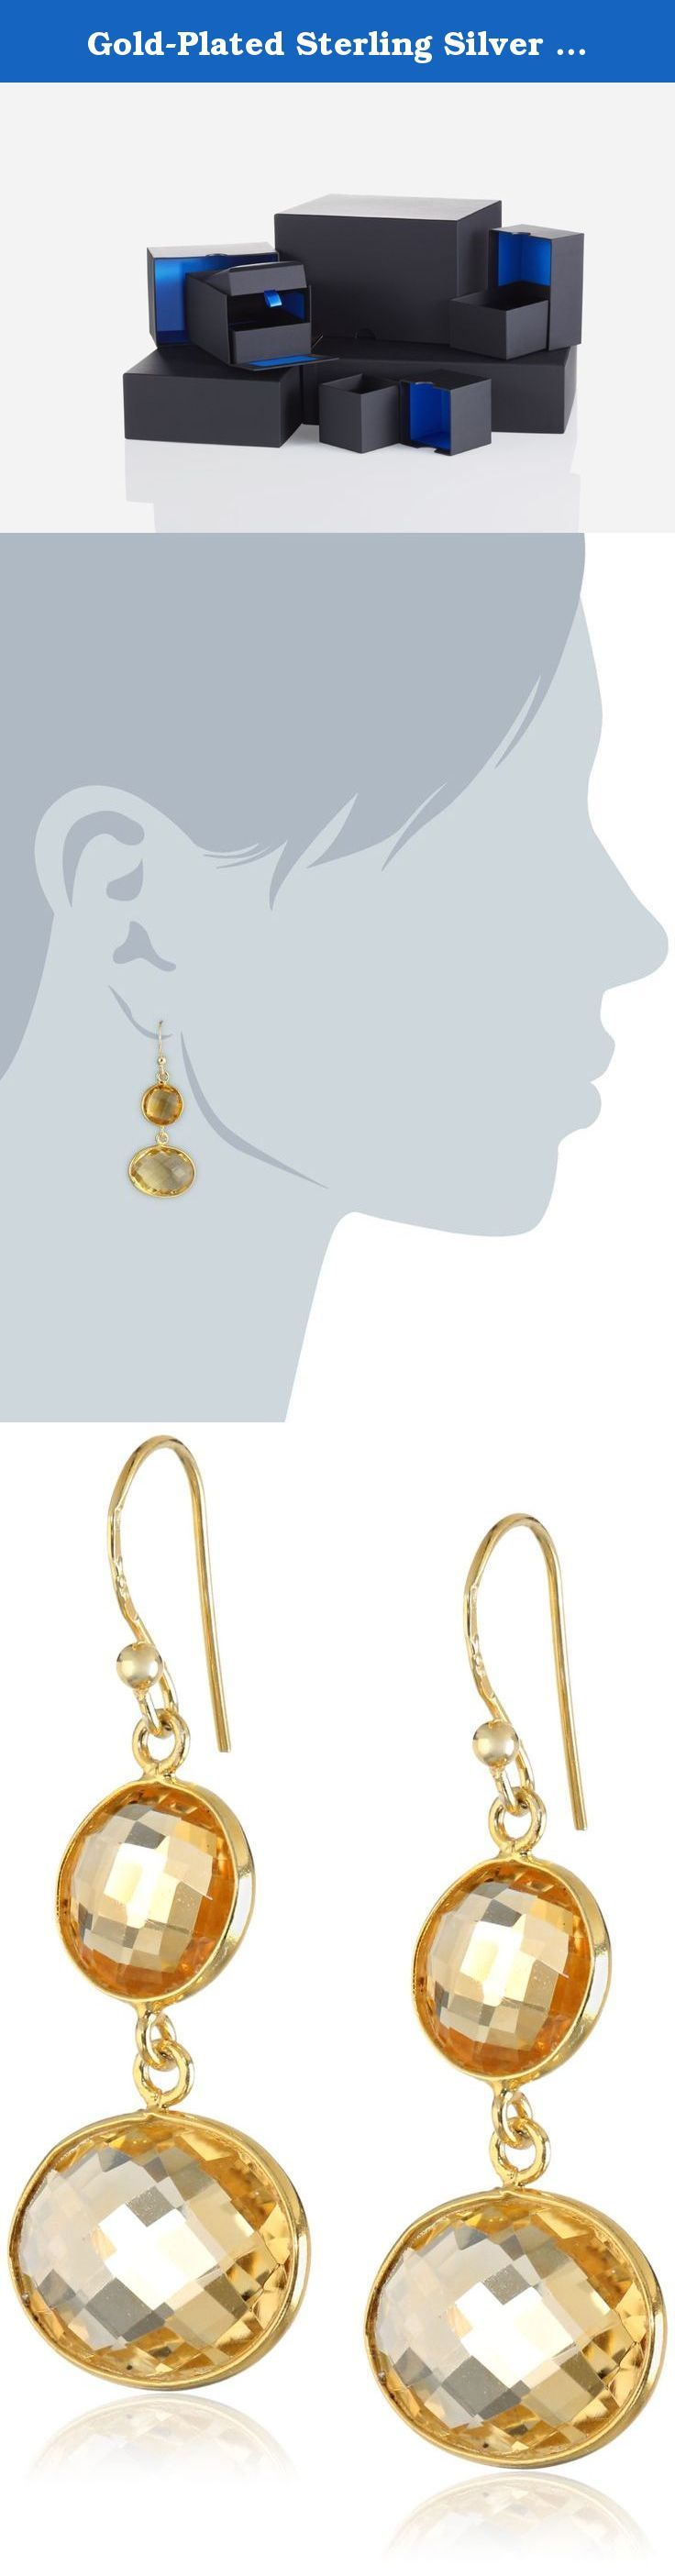 Gold-Plated Sterling Silver Citrine Round and Oval Bezel Drop Earrings. The natural properties and composition of mined gemstones define the unique beauty of each piece. The image may show slight differences to the actual stone in color and texture.